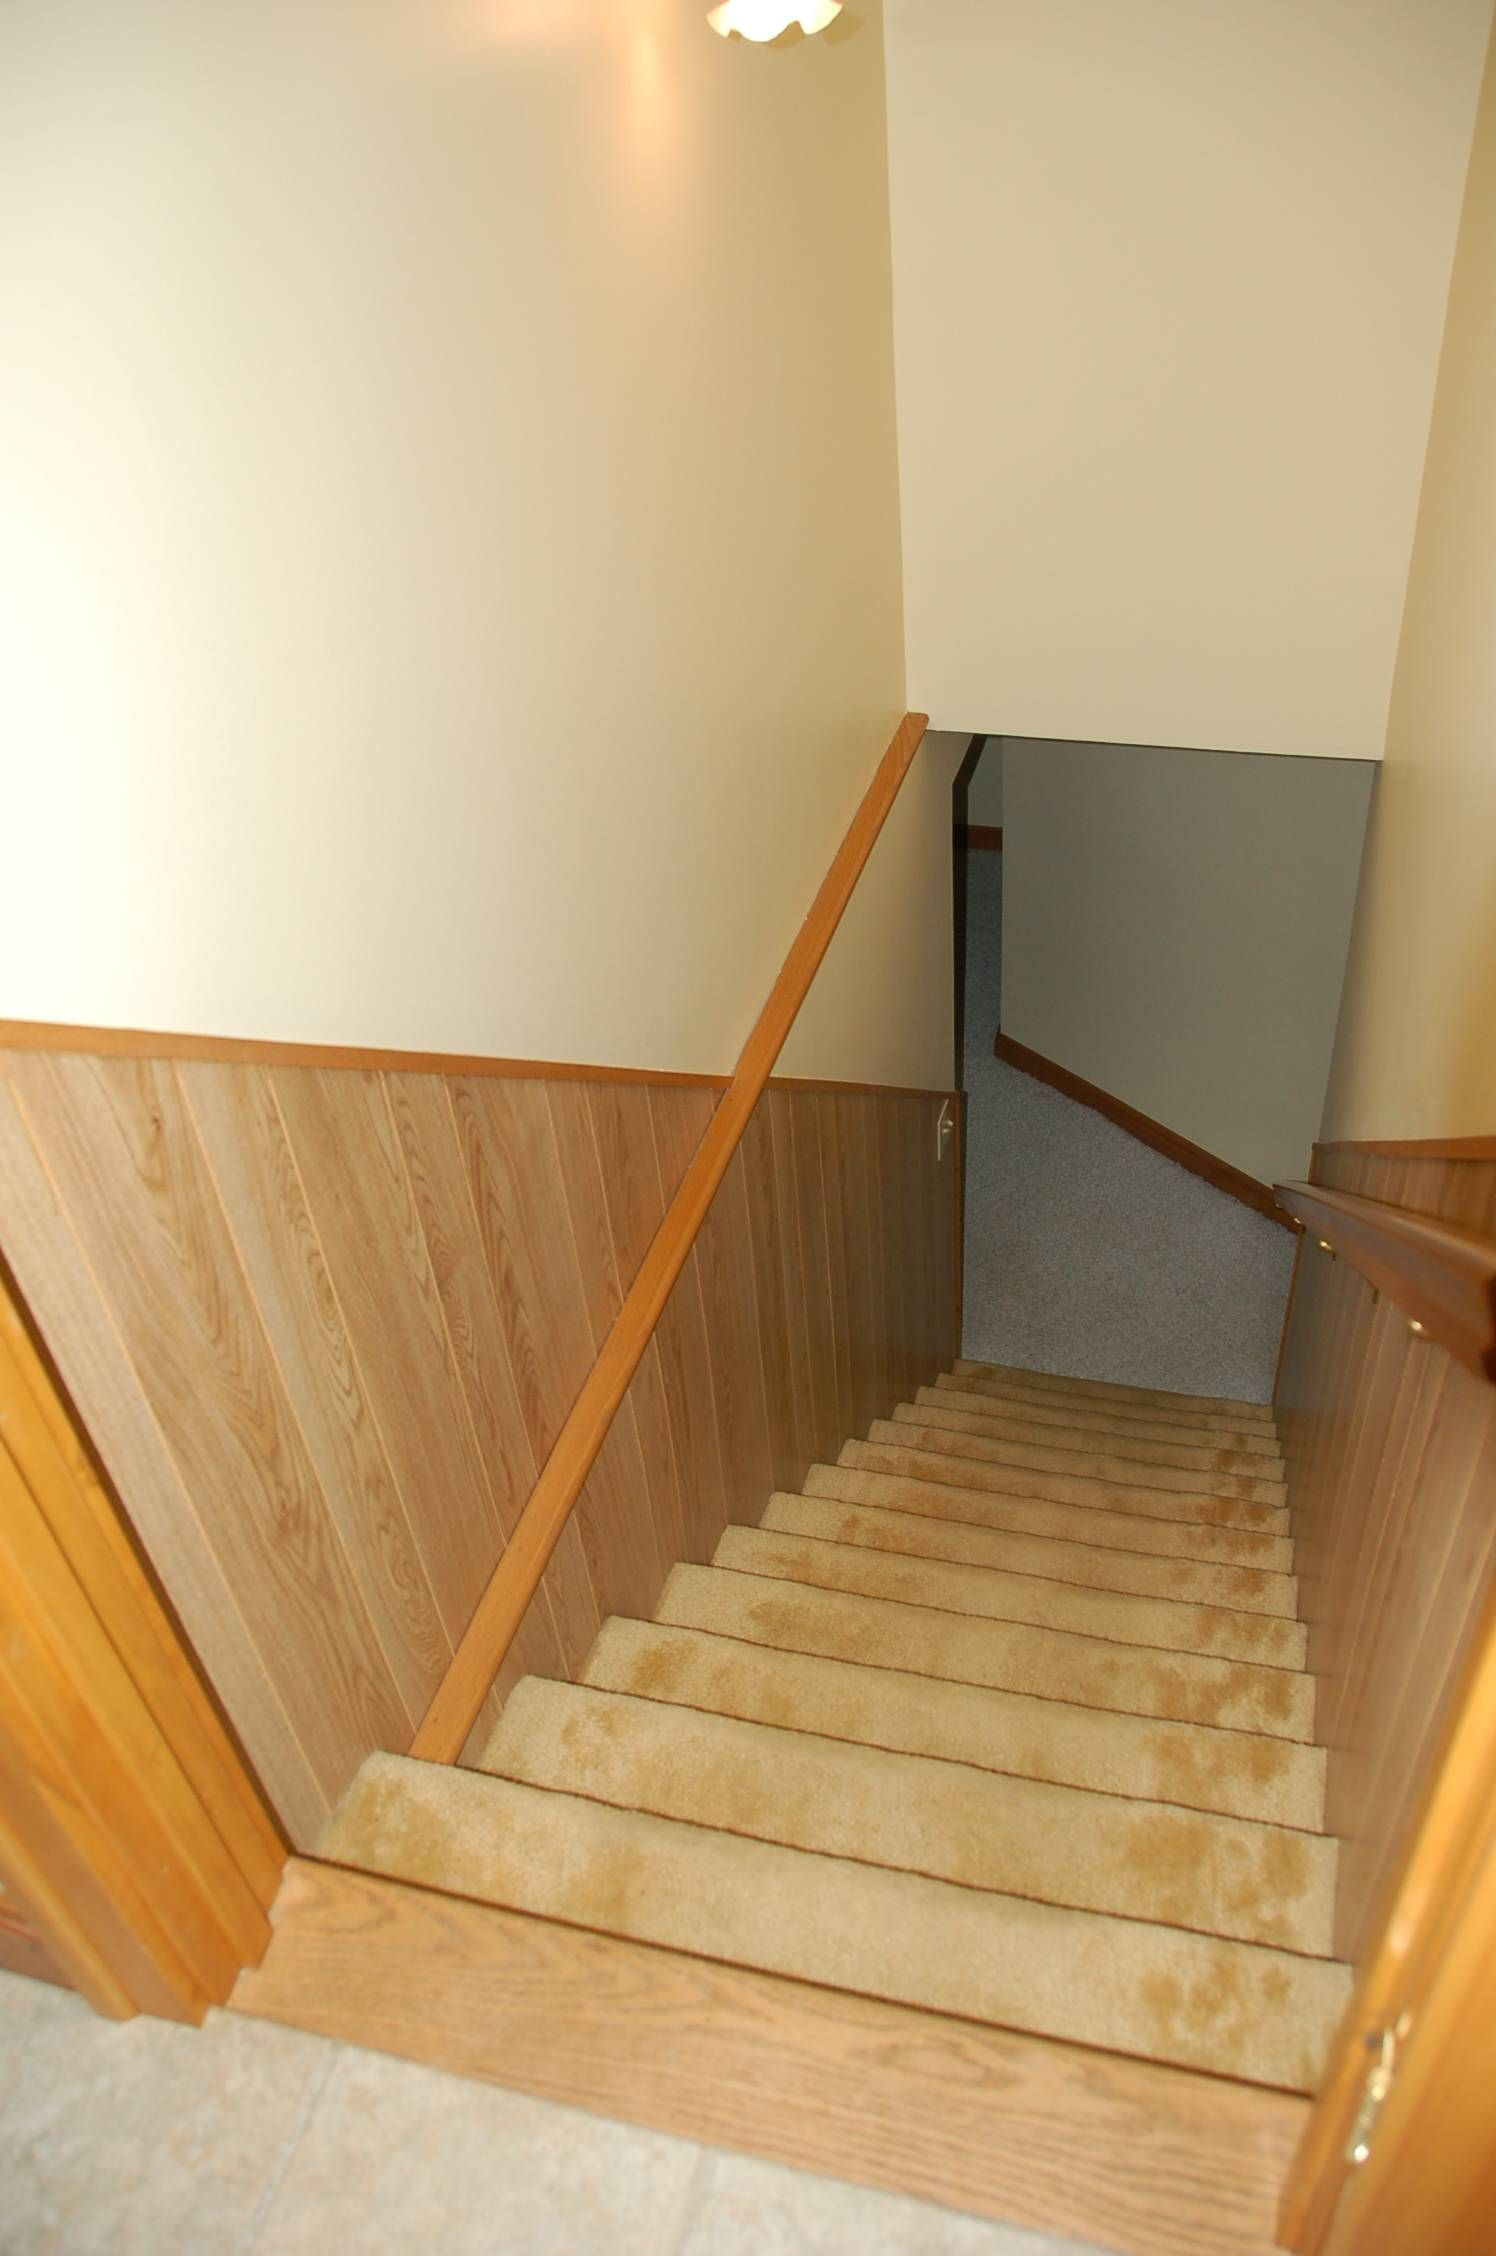 Stairs To Lower Level Remove Fake Wood Panelling And Install Tongue Groove Carpet Replace With